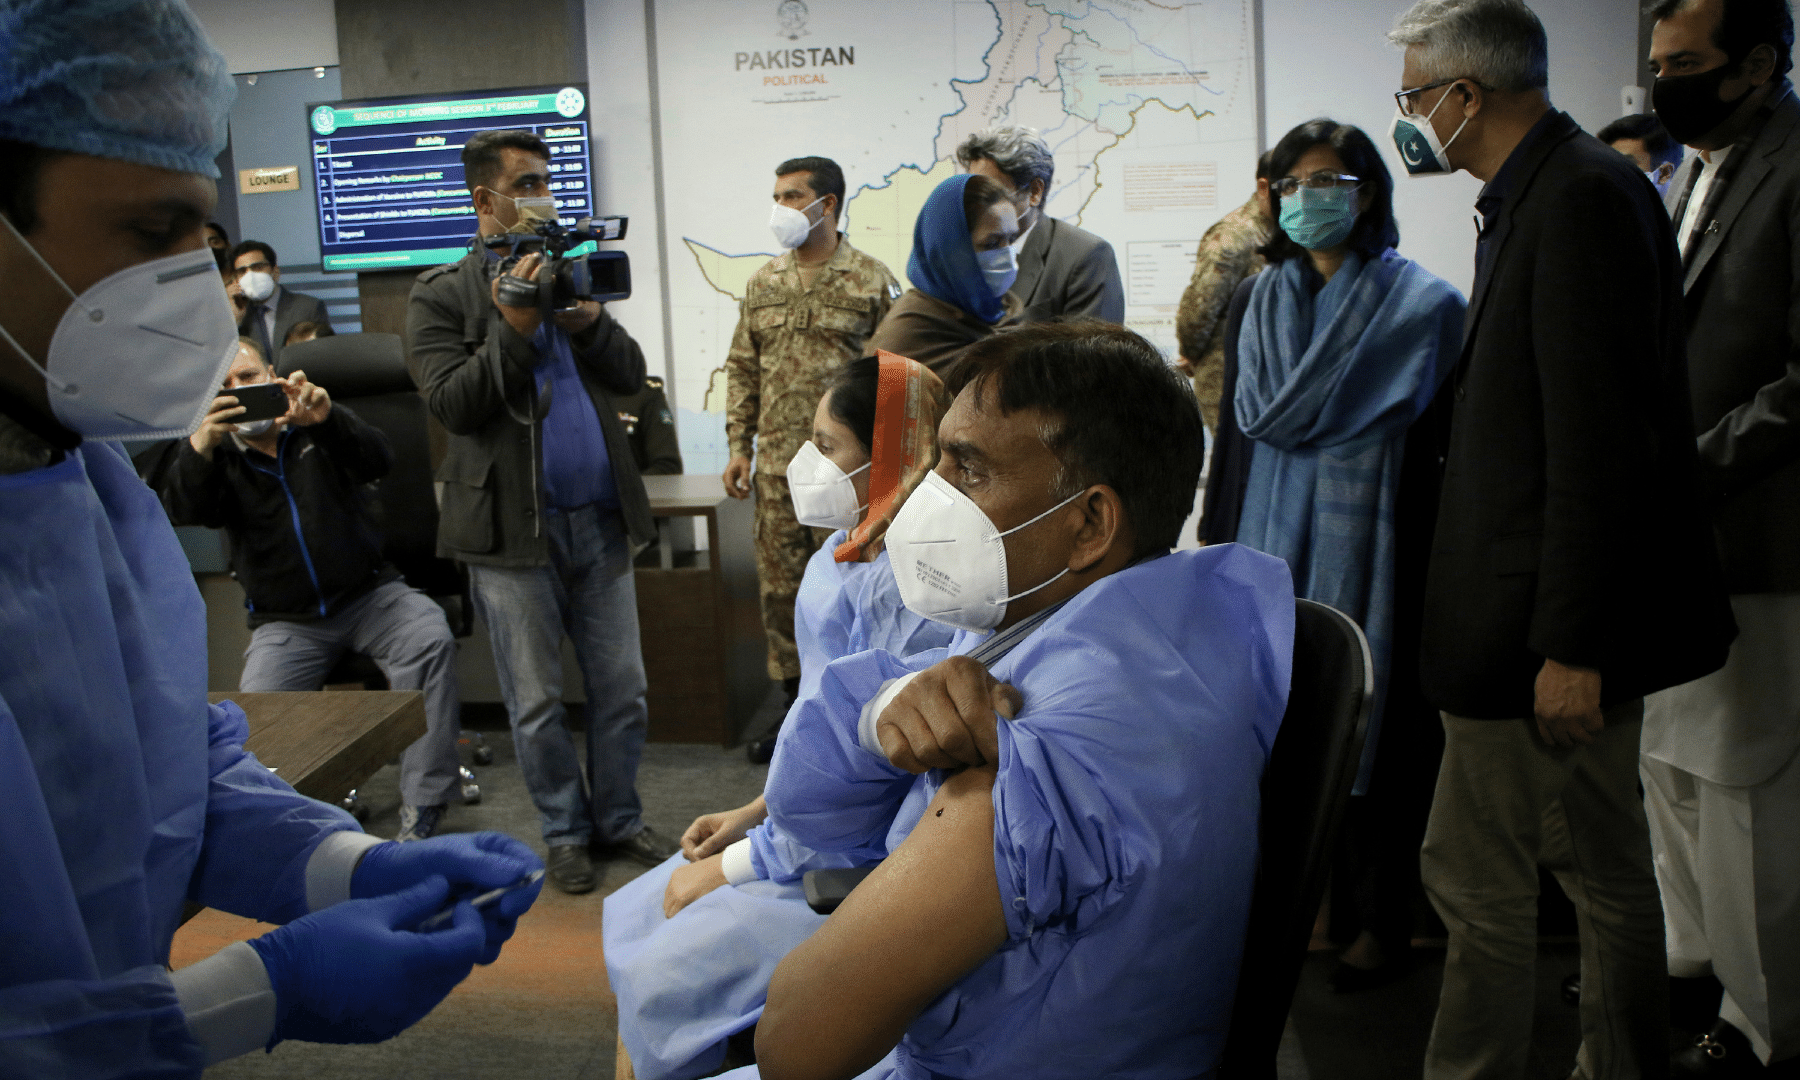 A health worker administers the Chinese Sinopharm Covid-19 vaccine to his colleague while Prime Minister's advisor on health Dr Faisal Sultan, second right, and other officials watch during a ceremony to start the vaccination campaign in Islamabad. — AP